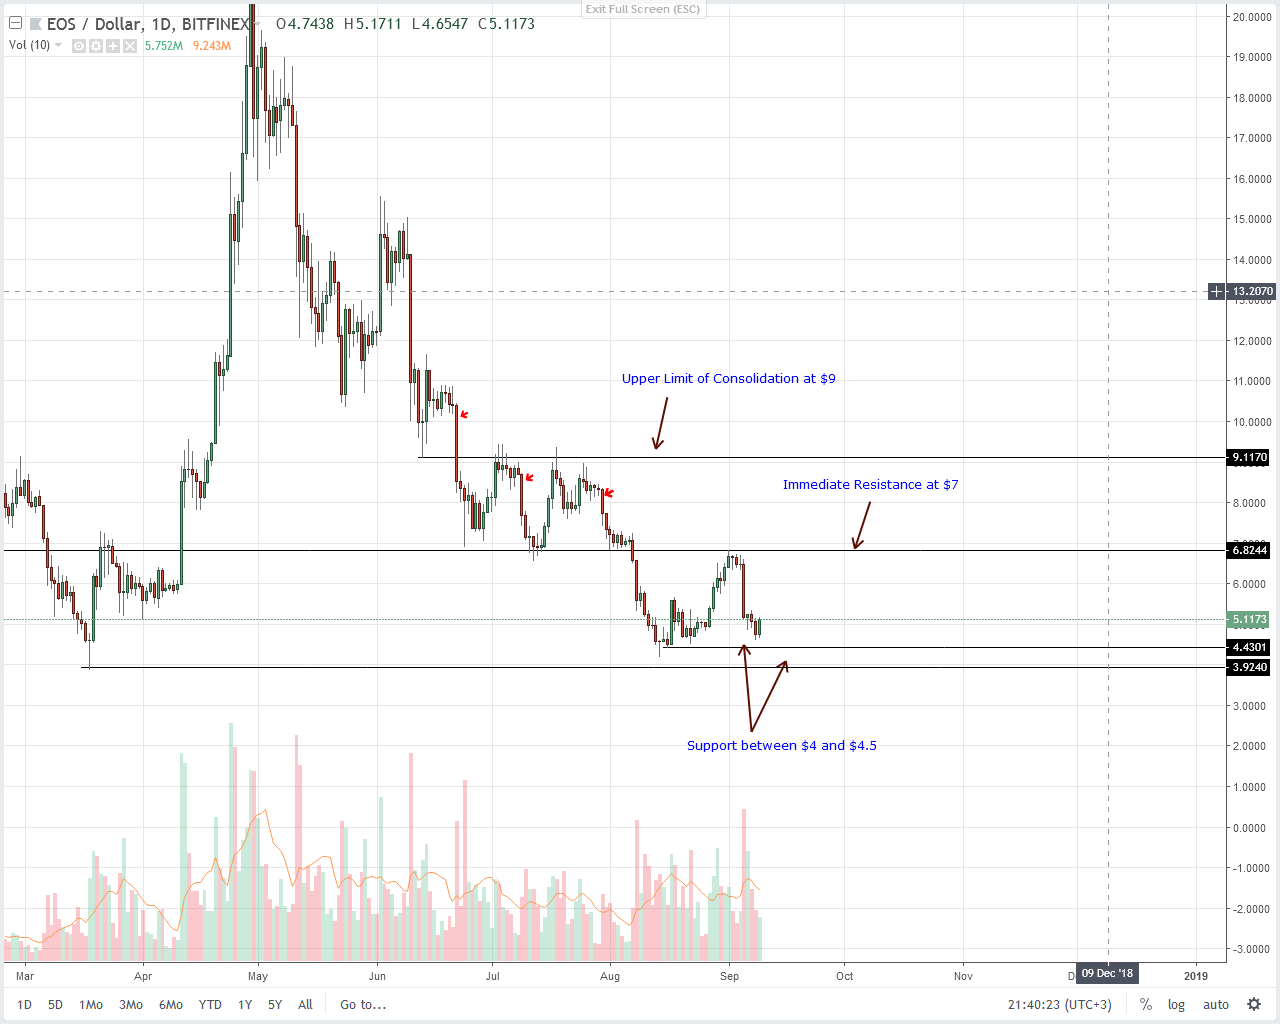 EOS Daily Chart Sep 81